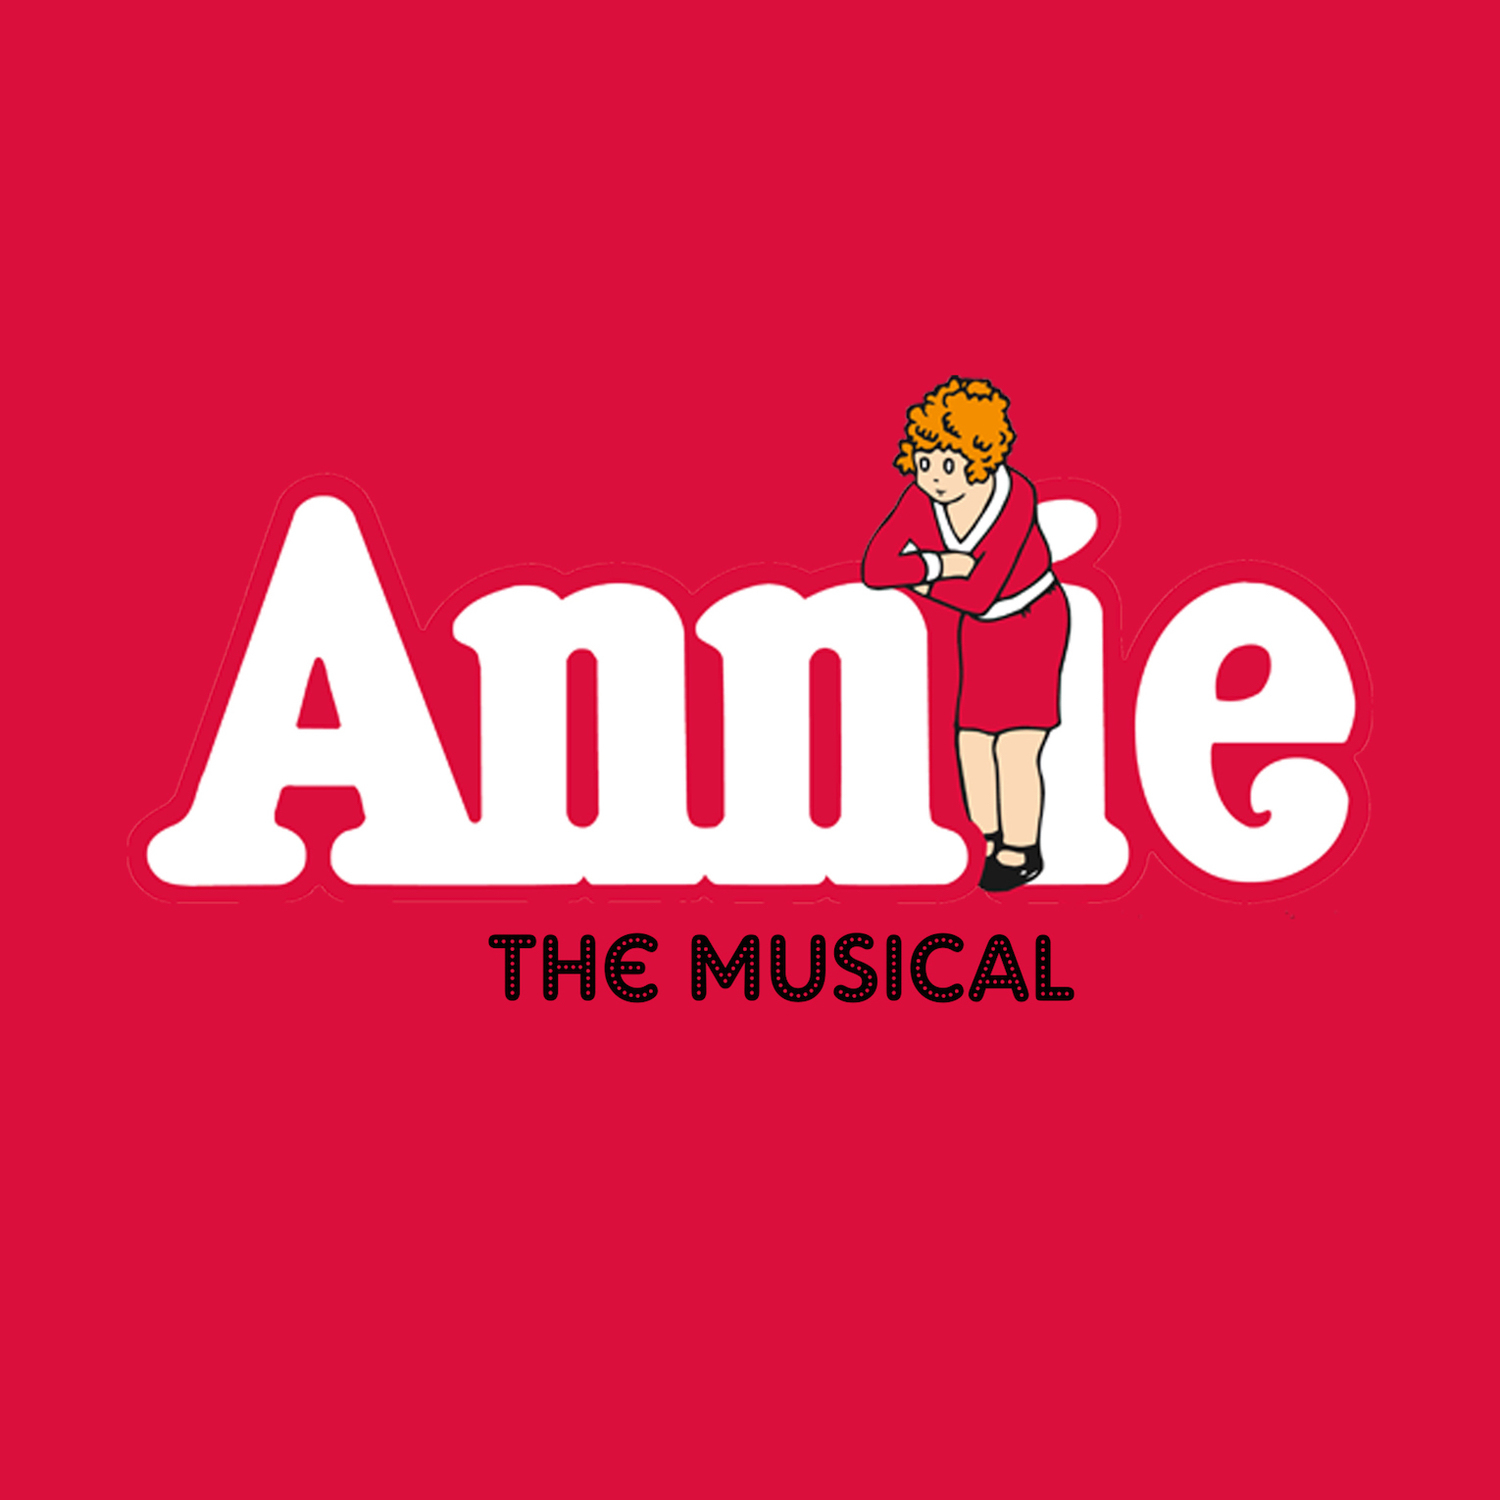 BWW Review: ANNIE, the First Broadway Musical We Never Forget